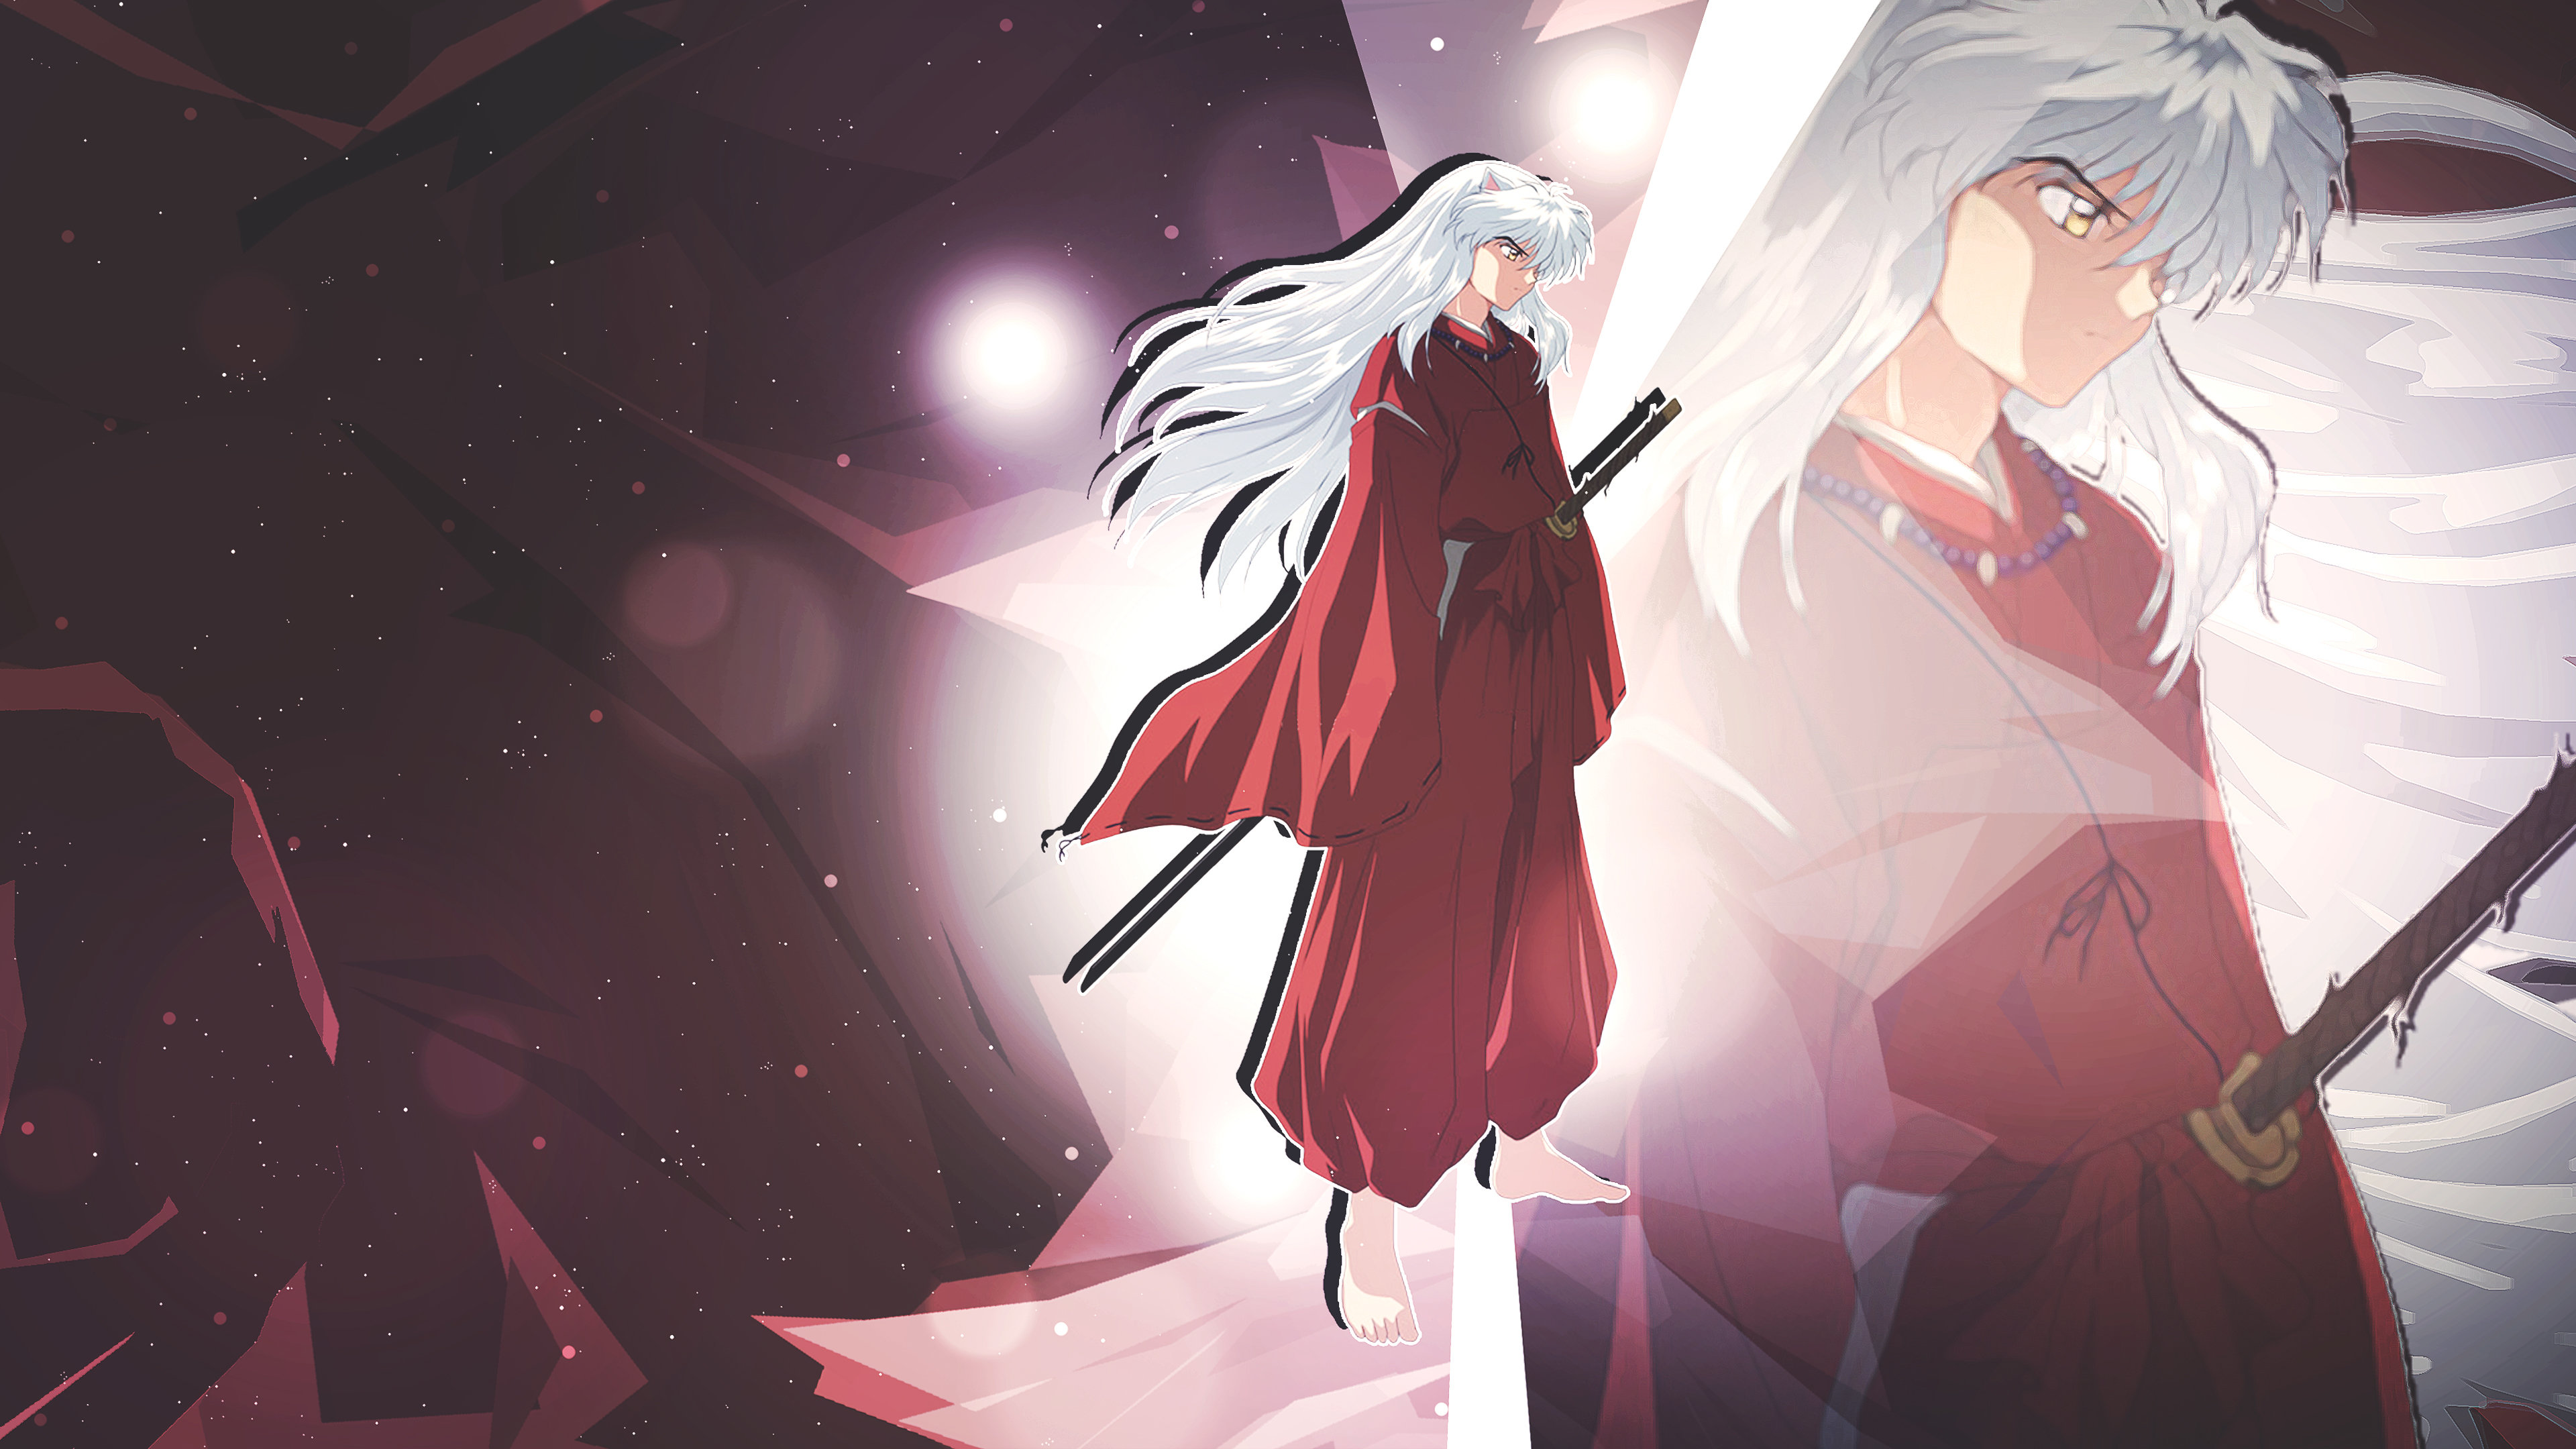 Best Inuyasha Wallpaper Id 45910 For High Resolution Ultra Hd 4k